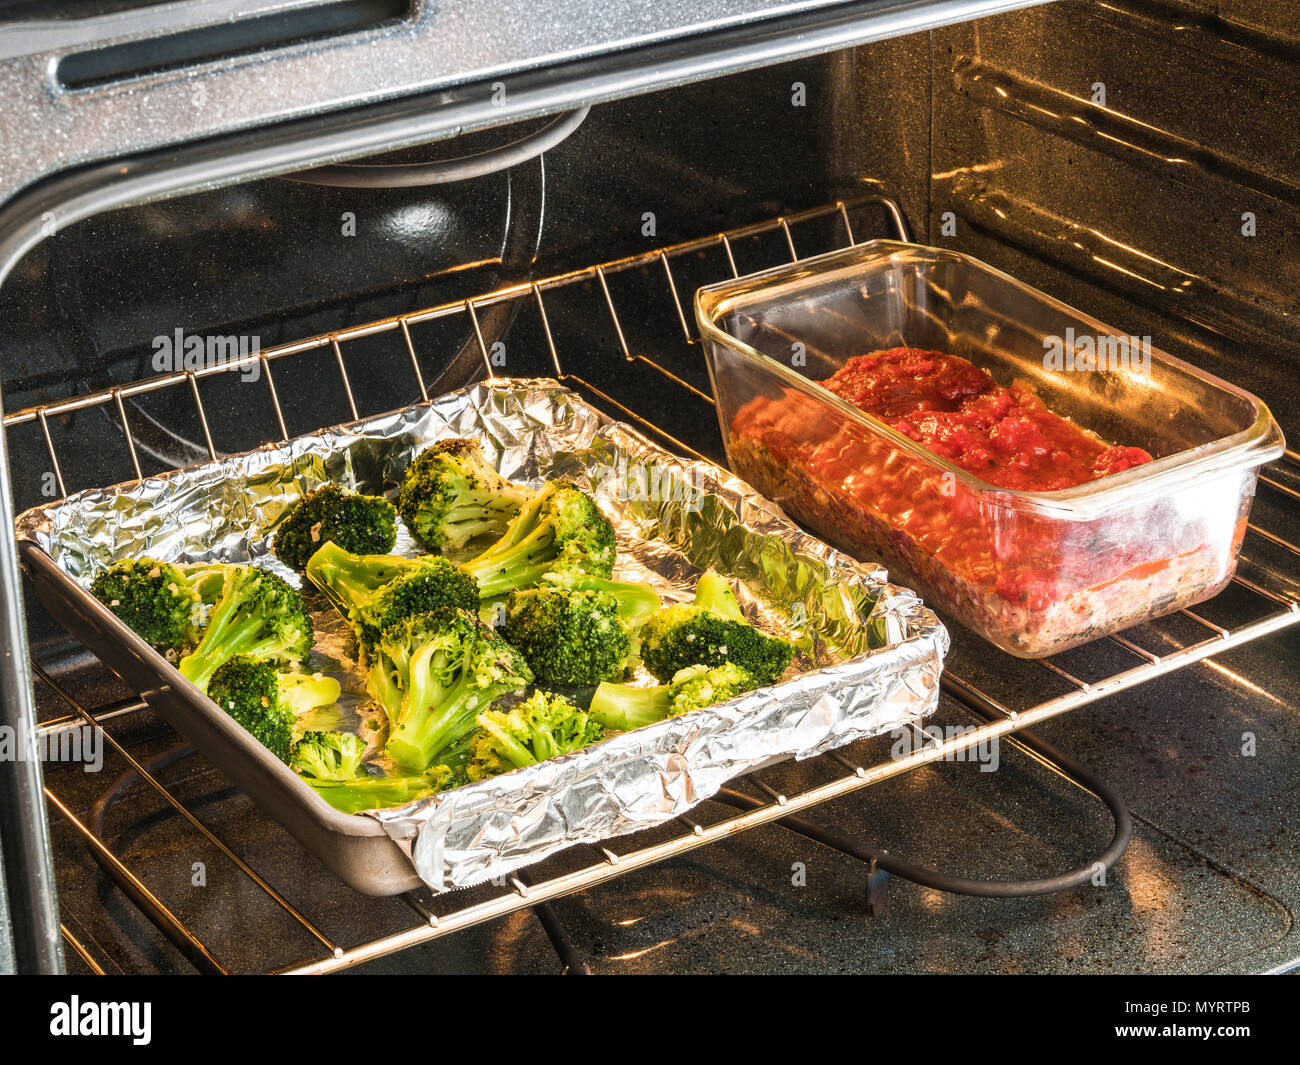 prepared meals dream dinners meatloaf milano with oven roasted broccoli in oven Stock Photo